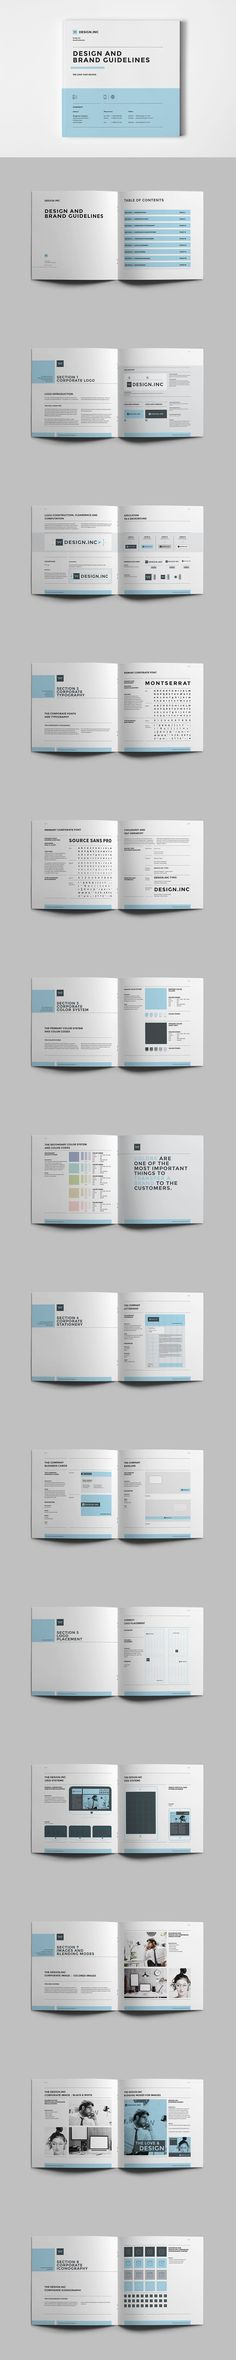 Brand Manual and Identity 36 Pages Template InDesign INDD